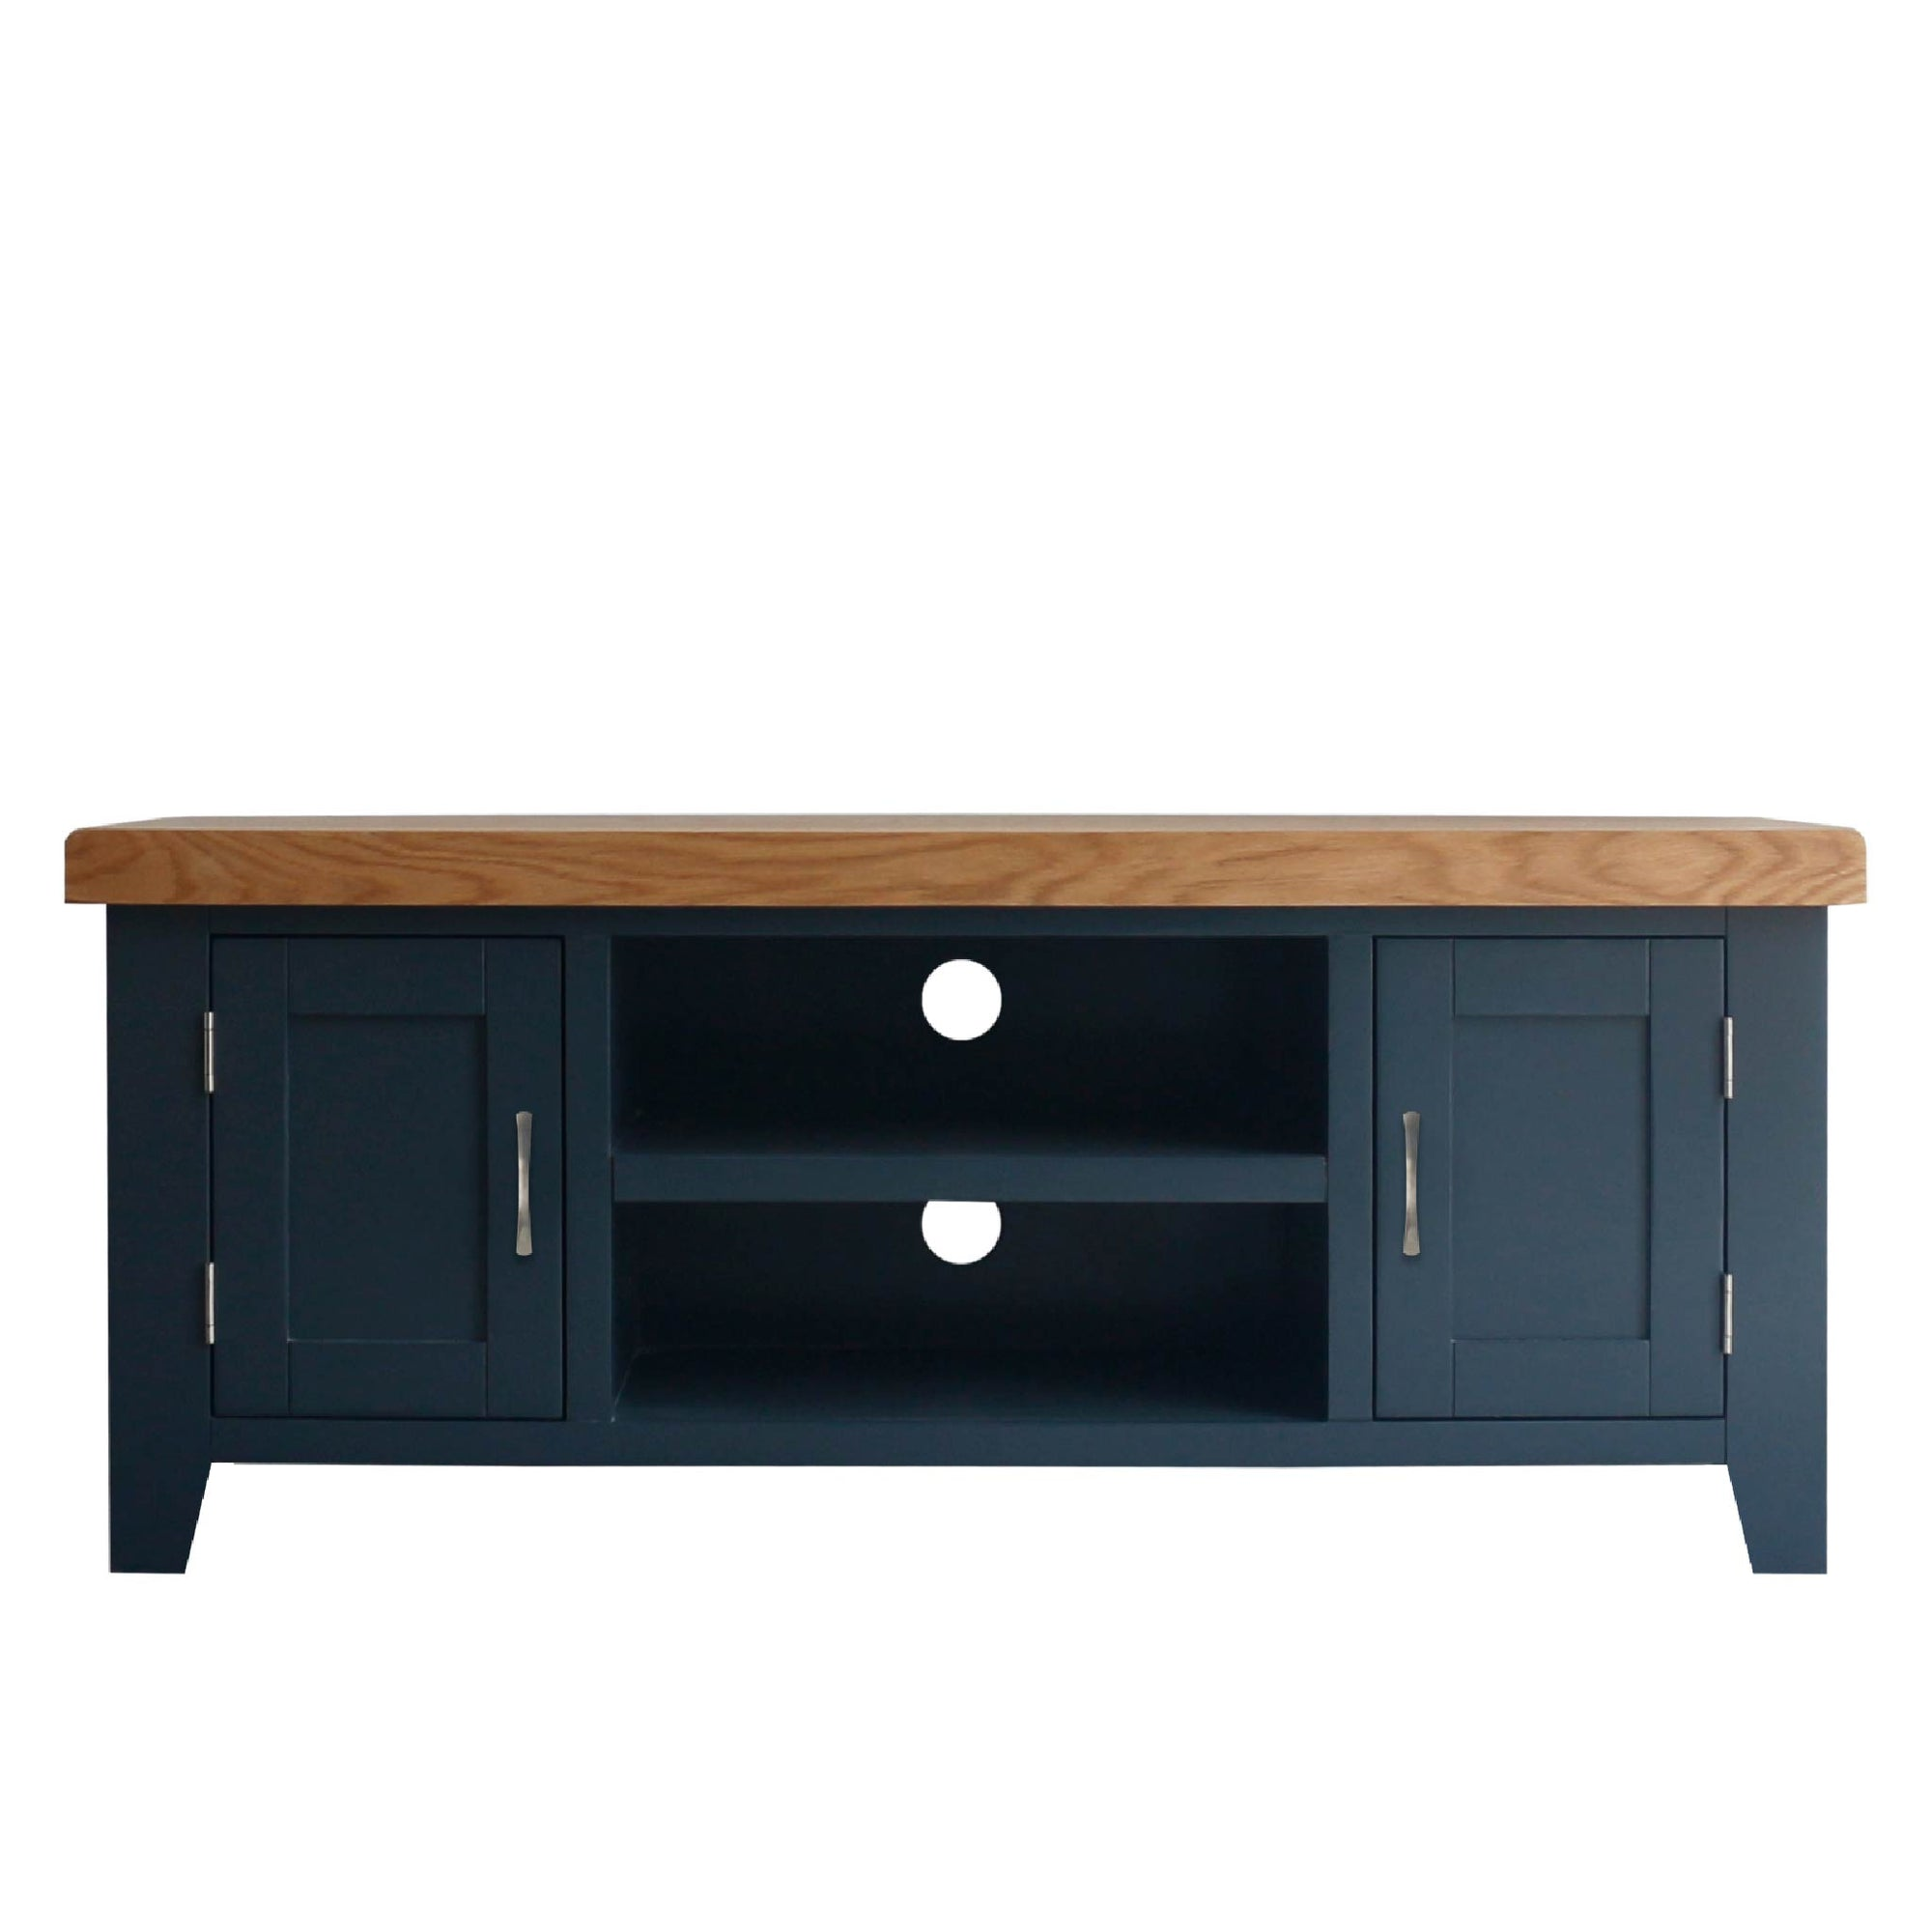 Chatsworth Blue 120 cm Large TV Stand from Roseland Furniture